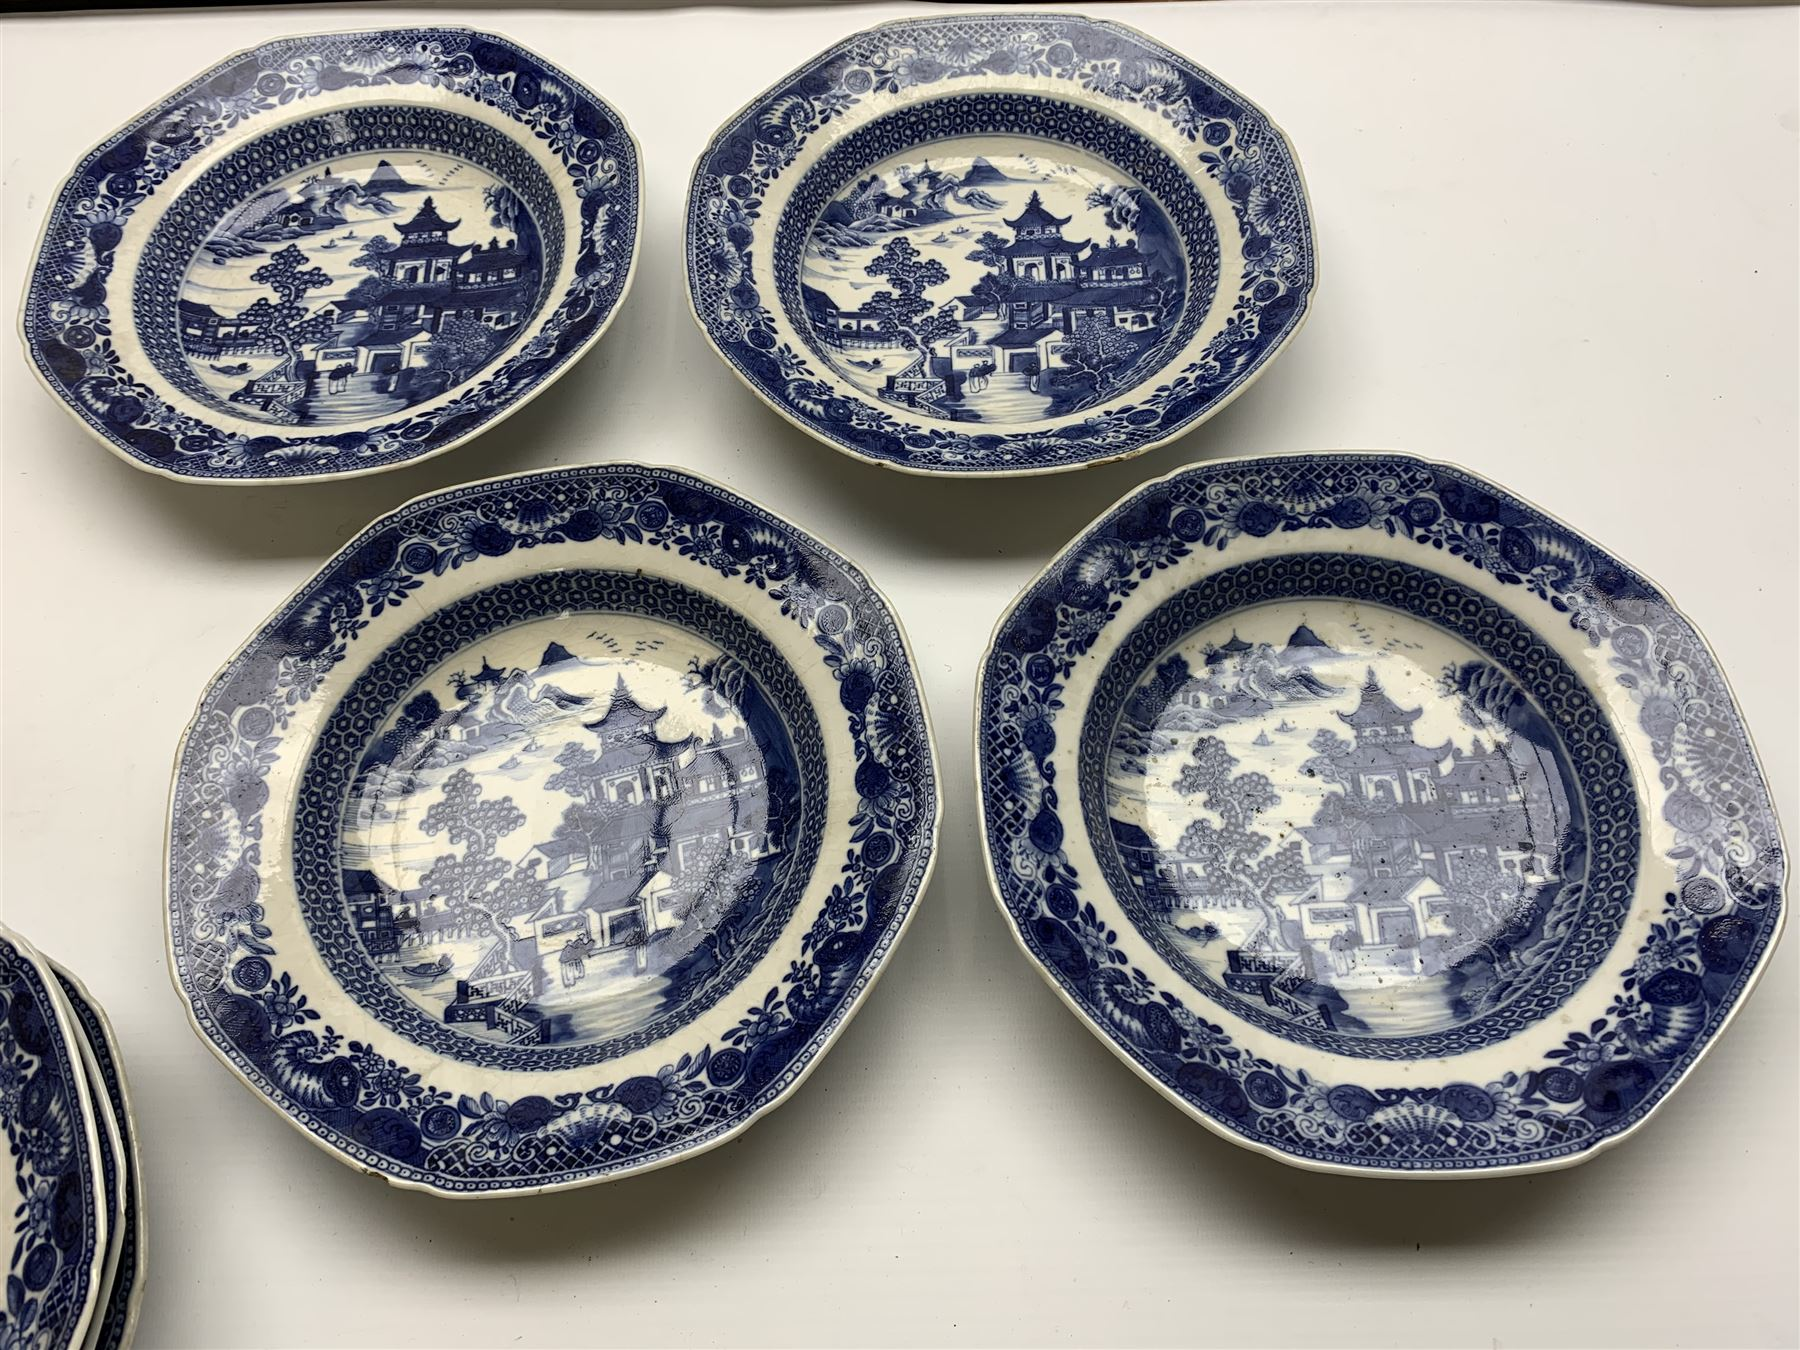 Late 18th/early 19th century Chinese export blue and white forty seven piece part dinner service - Image 7 of 20